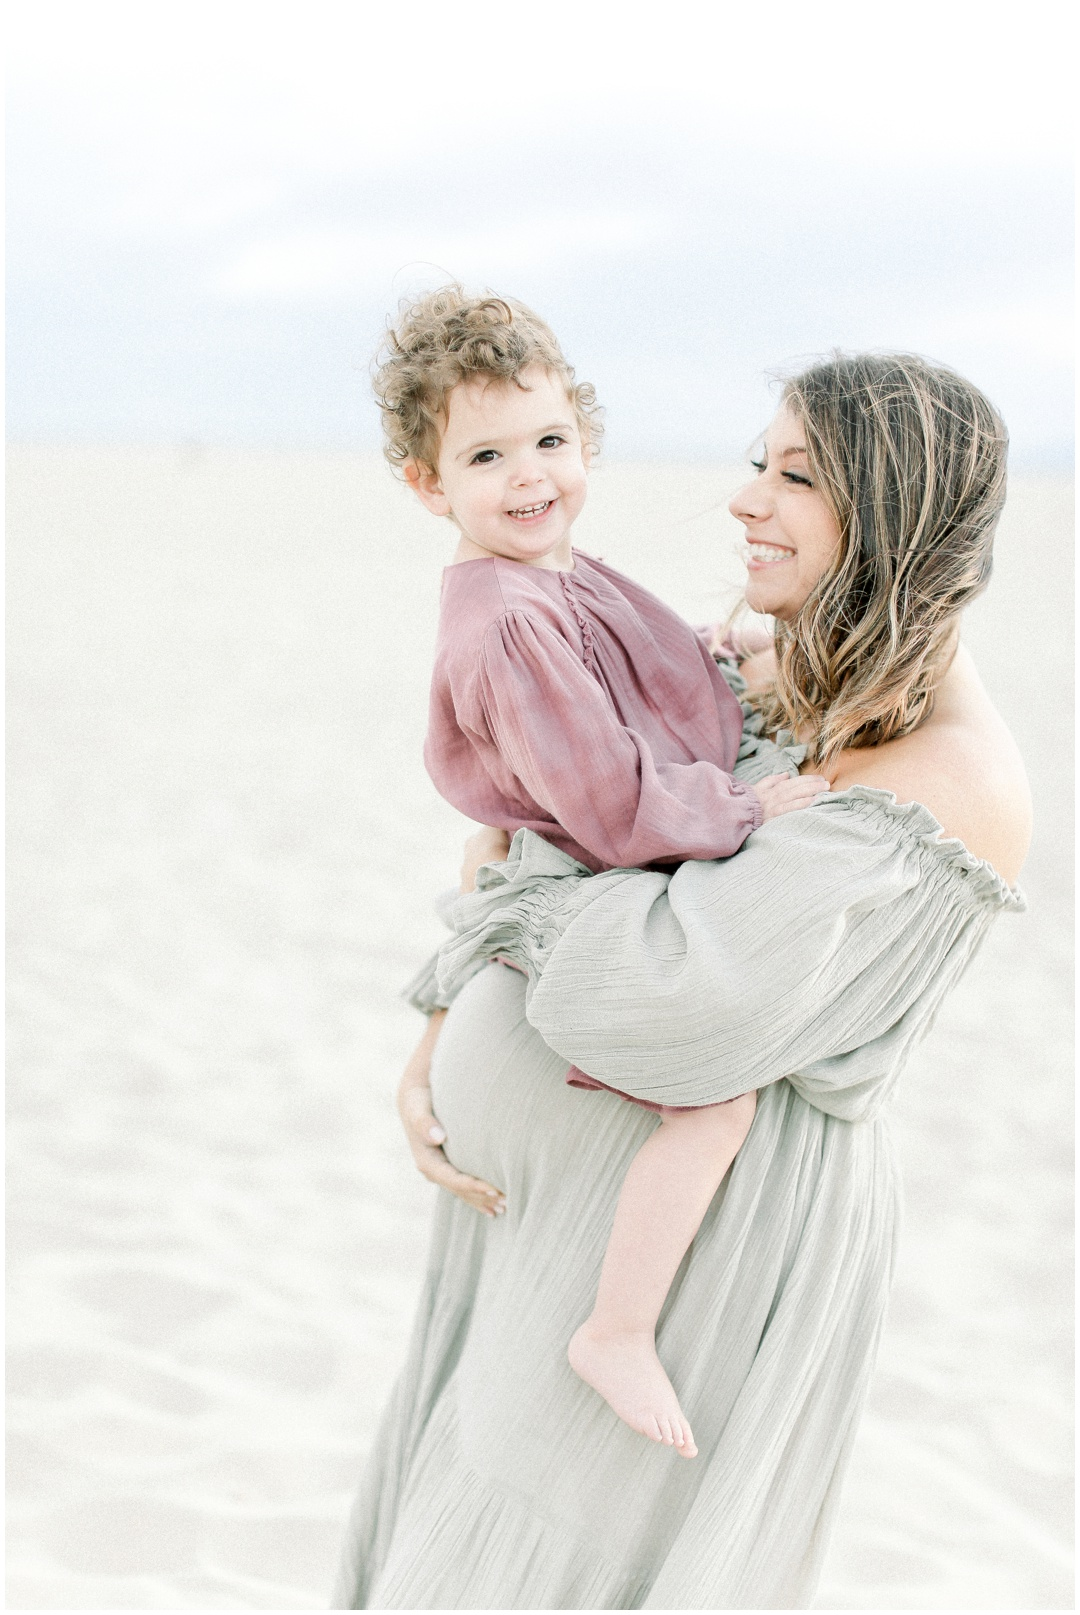 Newport_Beach_Newborn_Light_Airy_Natural_Photographer_Newport_Beach_Photographer_Orange_County_Family_Photographer_Cori_Kleckner_Photography_Huntington_Beach_Photographer_Family_OC_Newborn_Melissa_Scharf_Newborn_Family__3334.jpg